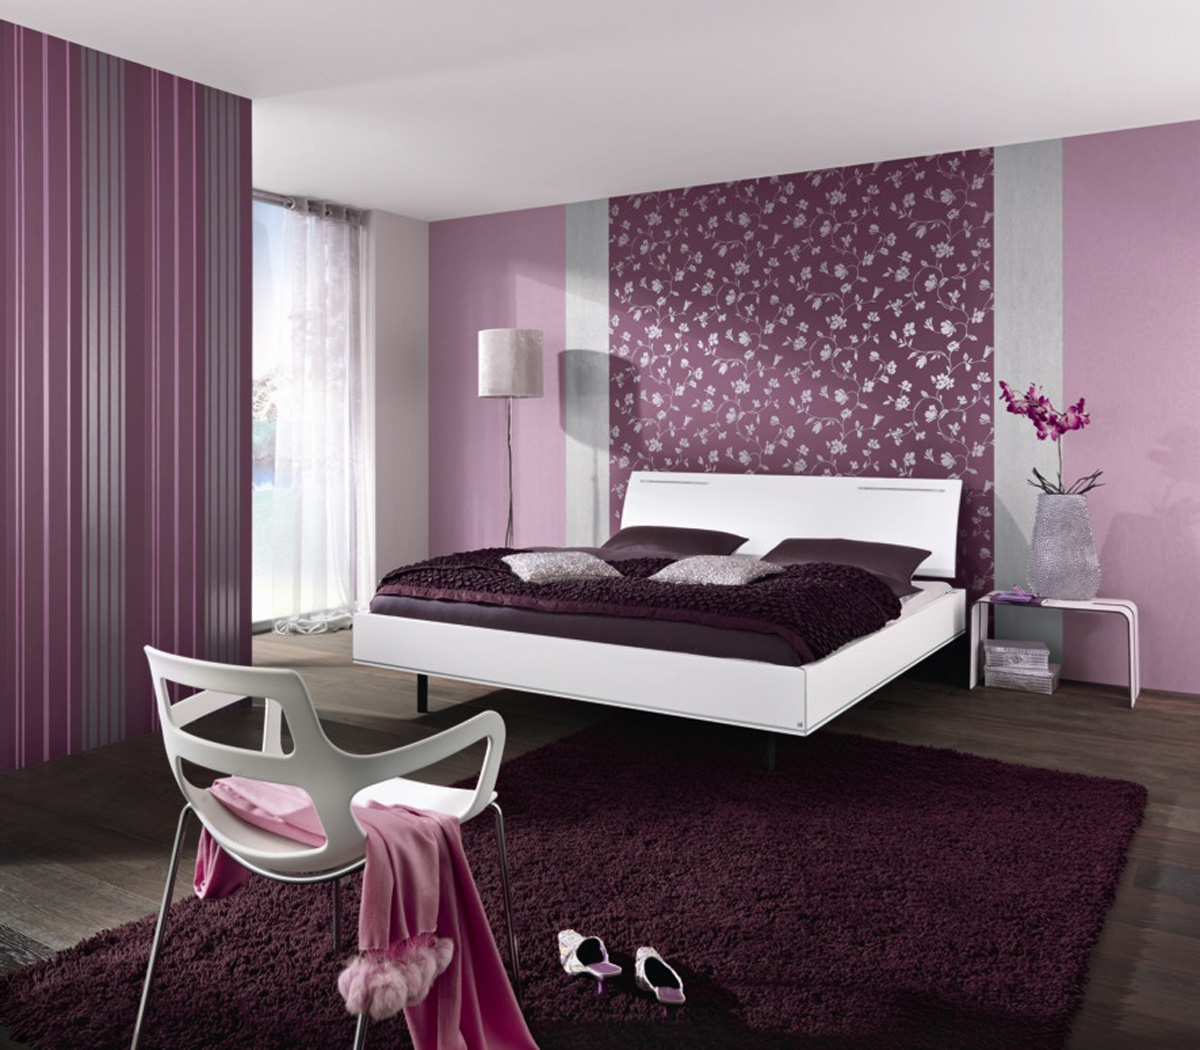 Purple designed bedroom with curtains